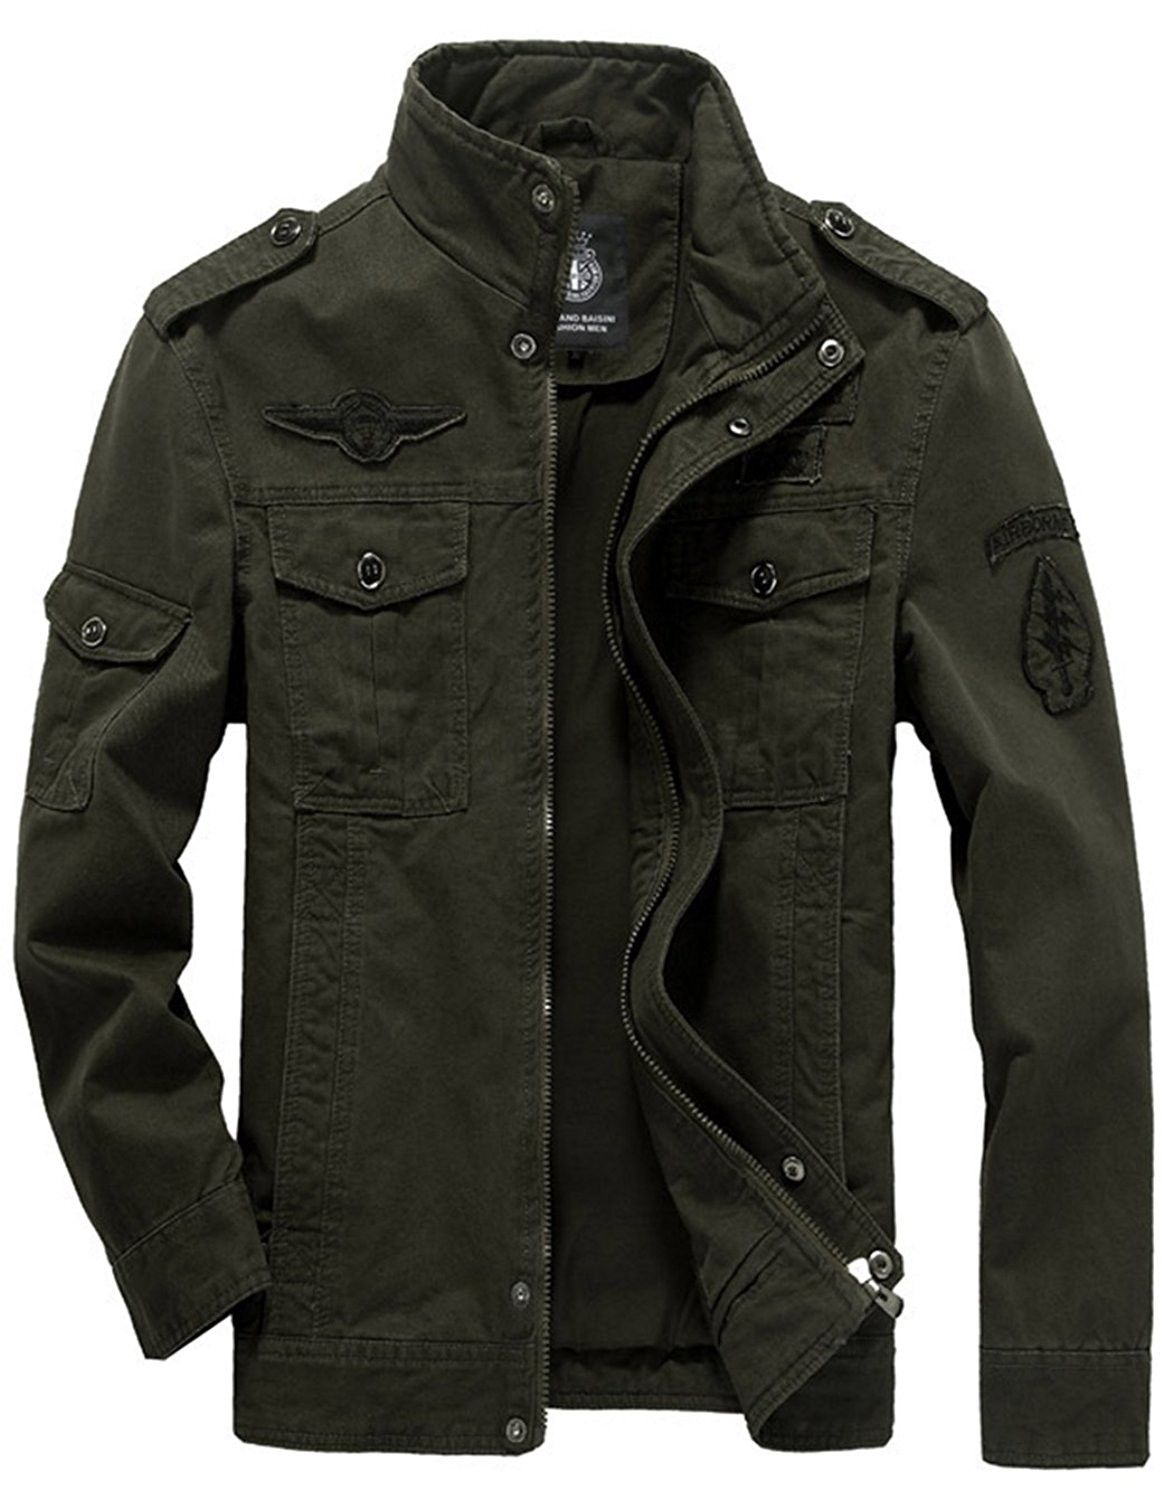 Men S Cotton Lightweight Military Casual Jacket Windbreaker Wind Trench Coat Bomber Jacket Green Cv187eidnry Army Clothes Mens Jackets Casual Military Style Jackets